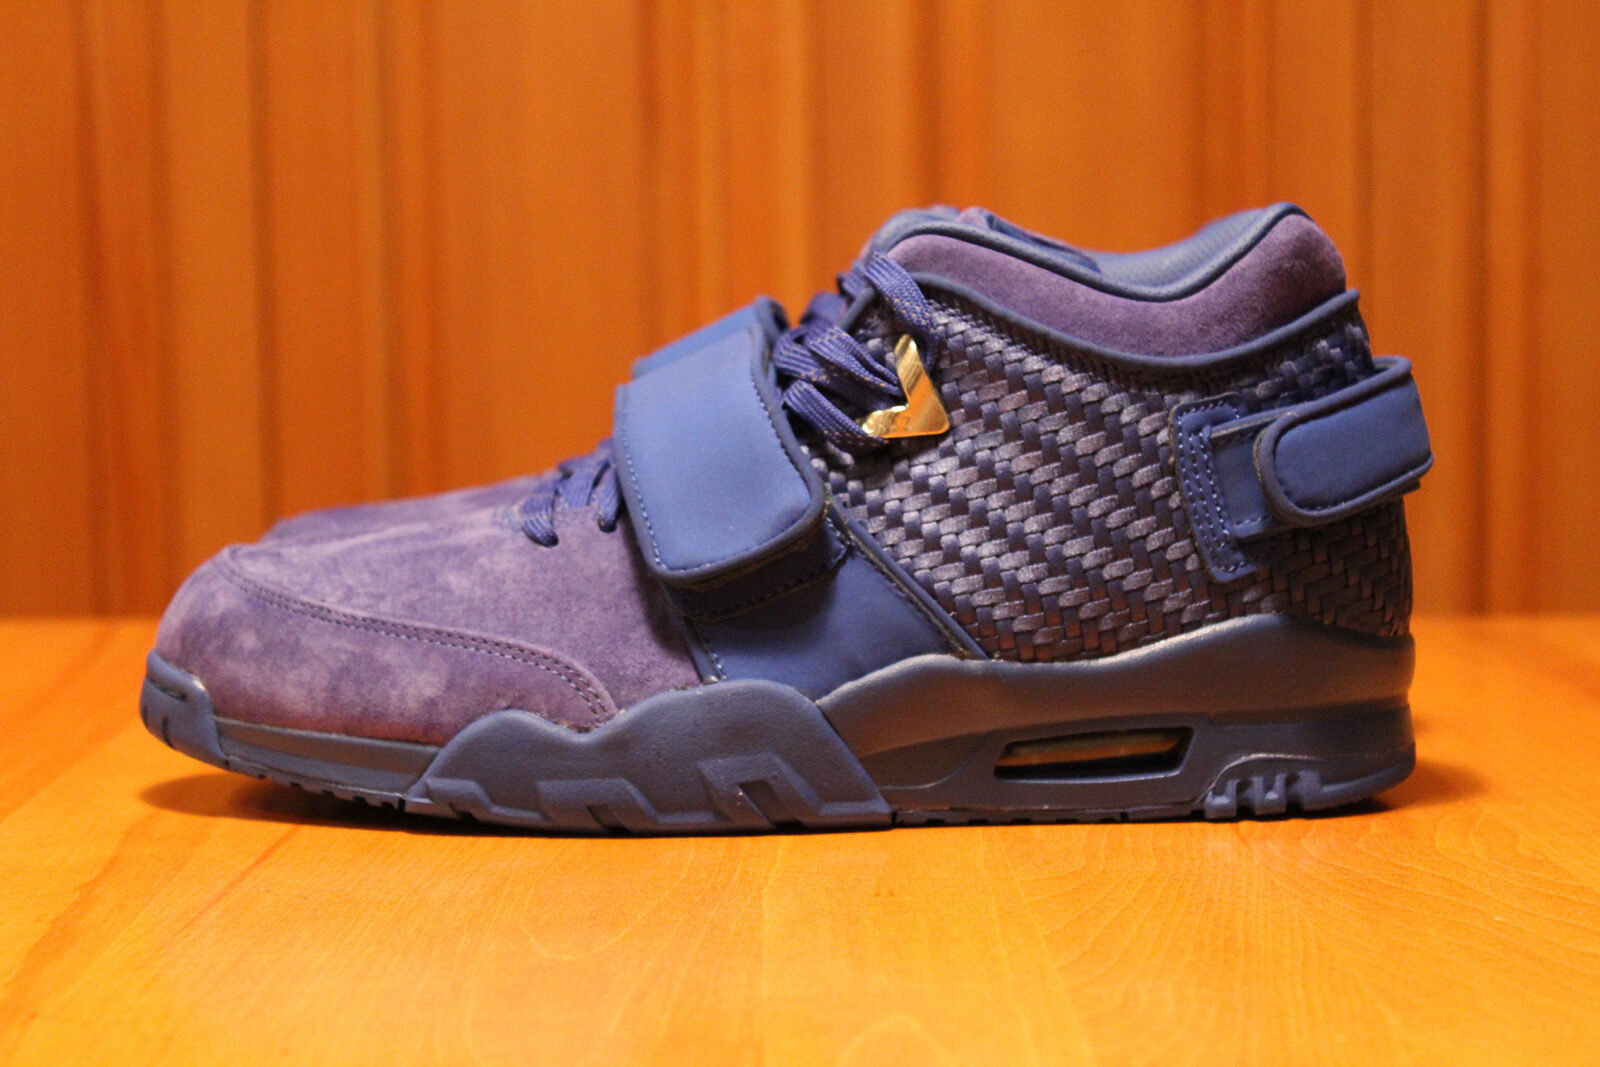 Mens Nike Sz Air Cruz Rush Blue Shoes Sz Nike 10 DS b8ec49